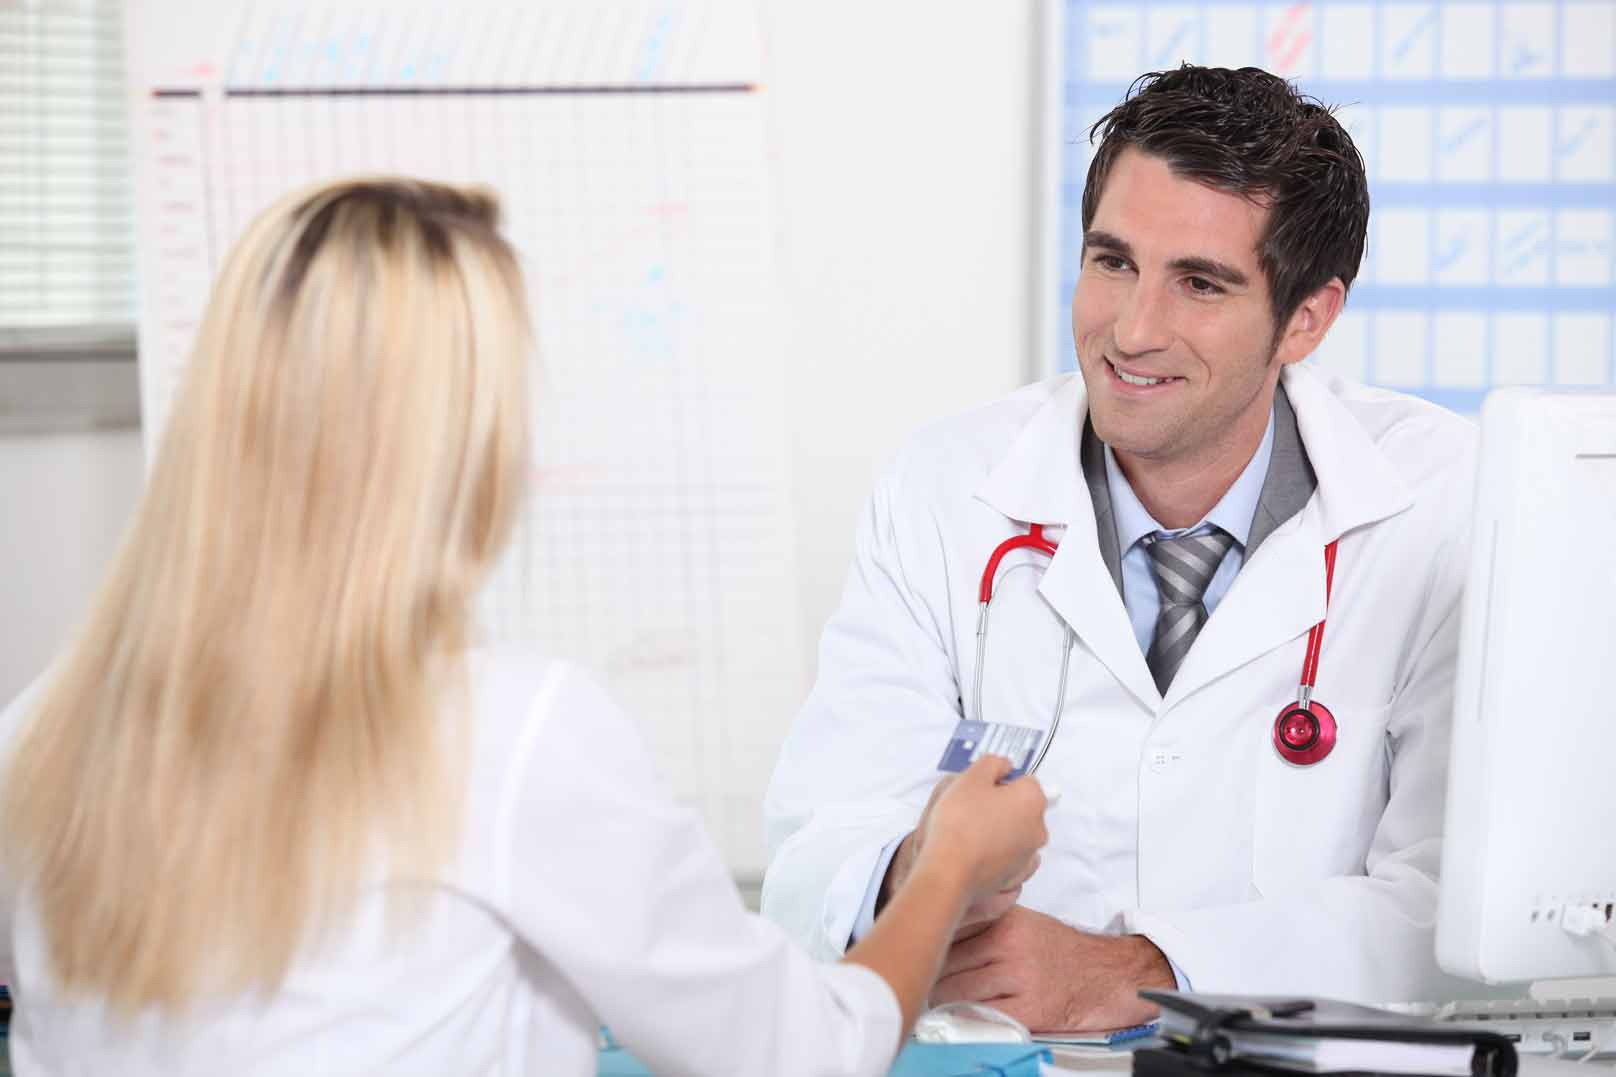 Why Should You Visit Your Doctor for Annual Physicals?